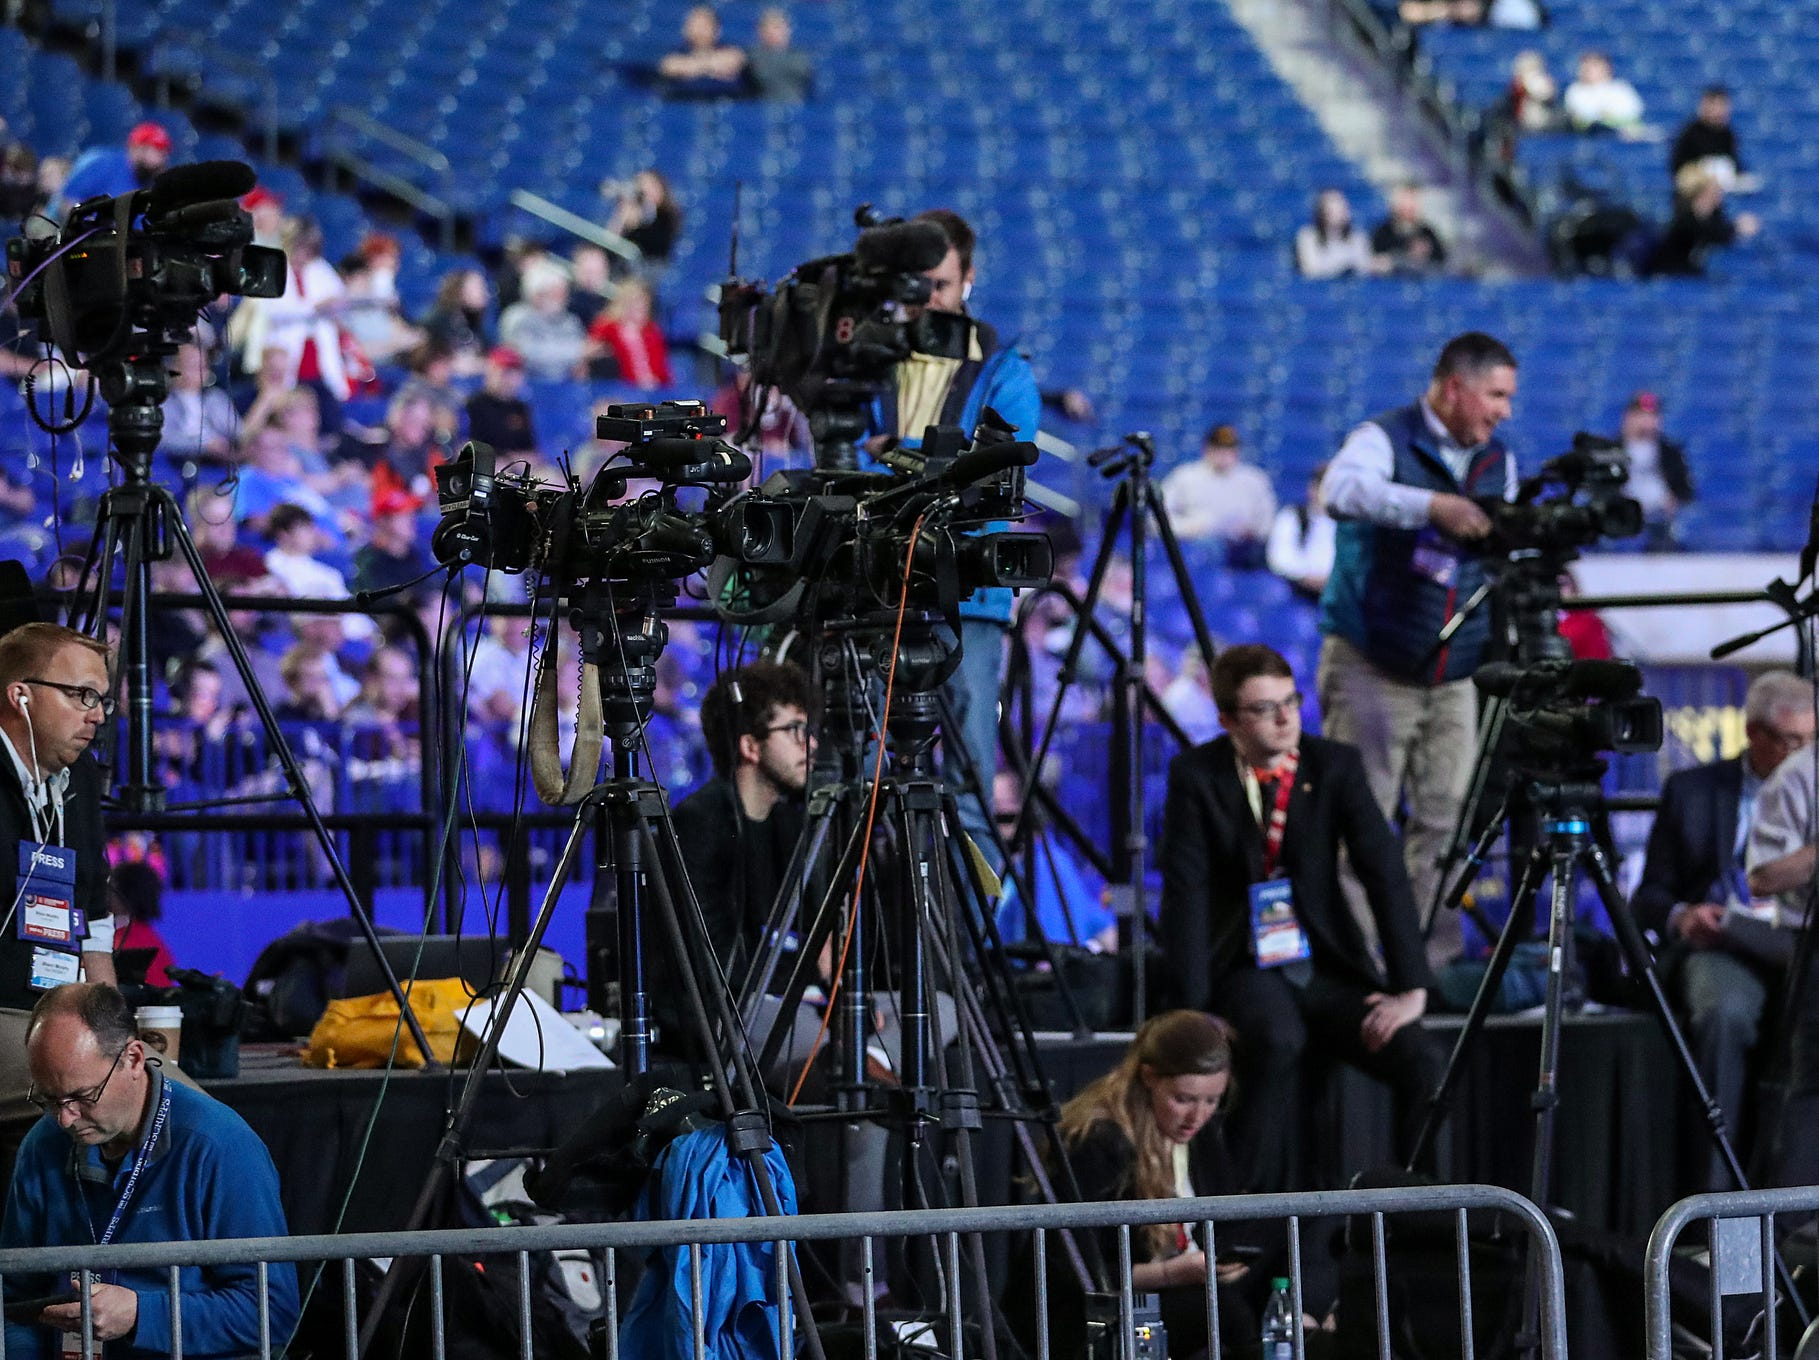 Media cameras are set before the National Rifle Association Institute for Legislative Action Leadership Forum, Friday, April 26, 2019, at Lucas Oil Stadium in Indianapolis. The forum is part of the 148th NRA annual meetings and exhibits in Indianapolis.